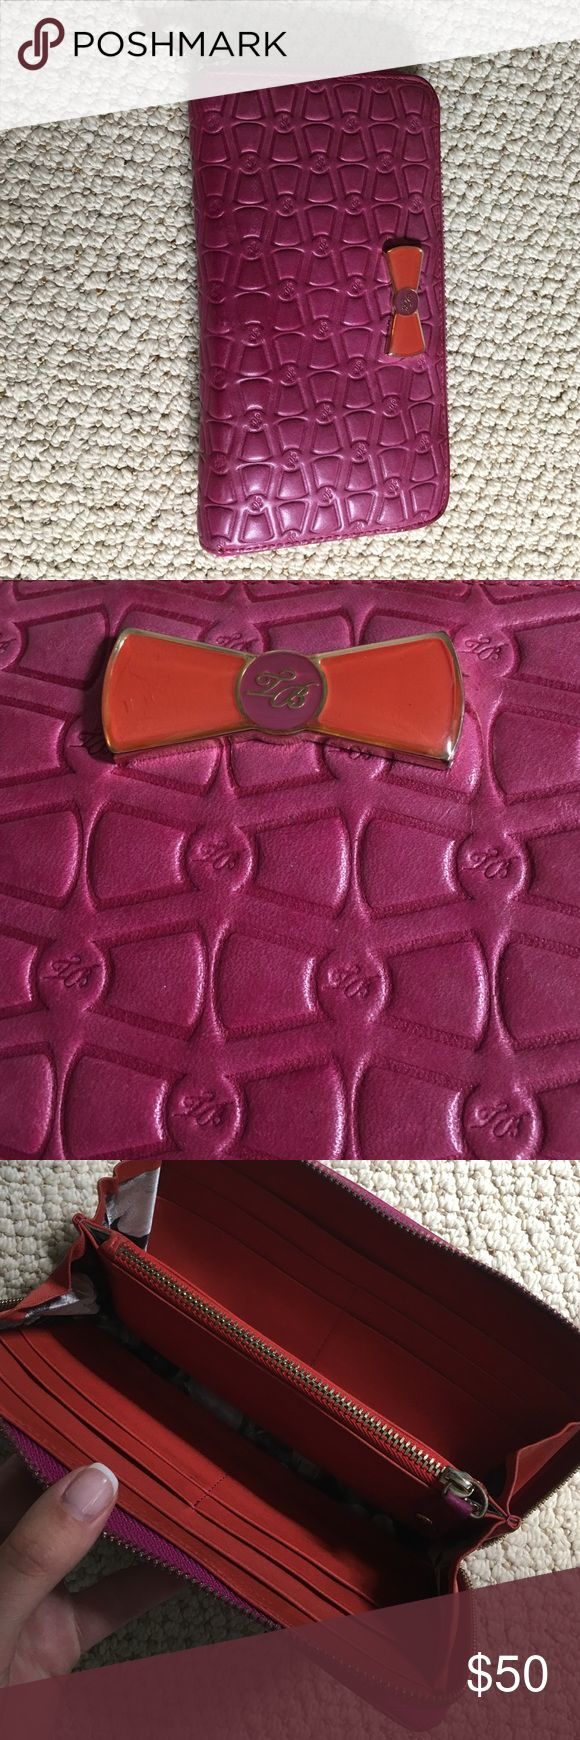 Ted baker wallet Magenta and orange bow Ted Baker wallet with extremely soft leather. Great condition! Ted Baker Bags Wallets